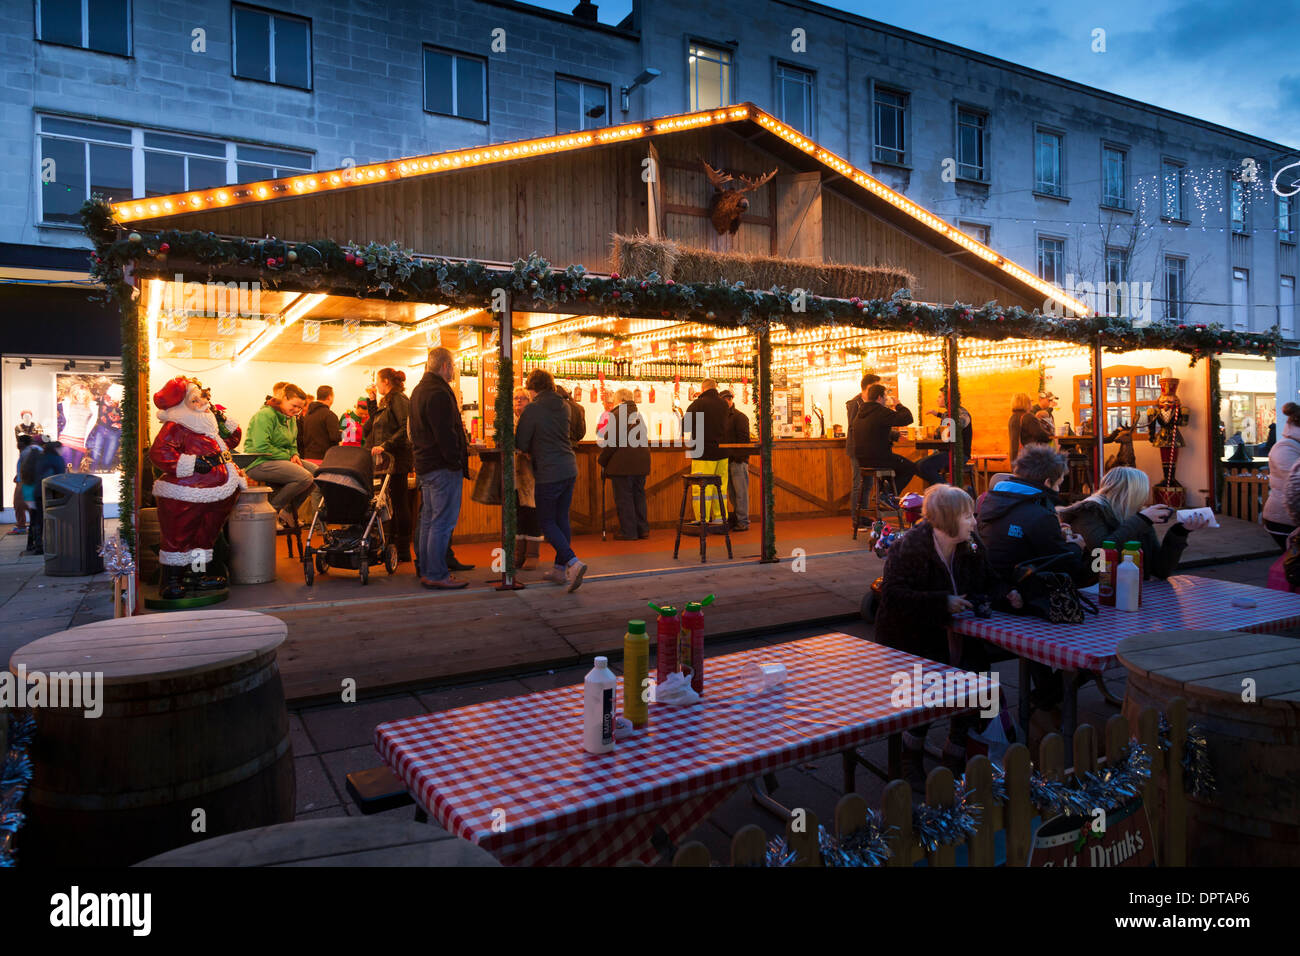 Beer chalet in traditional christmas street market. - Stock Image